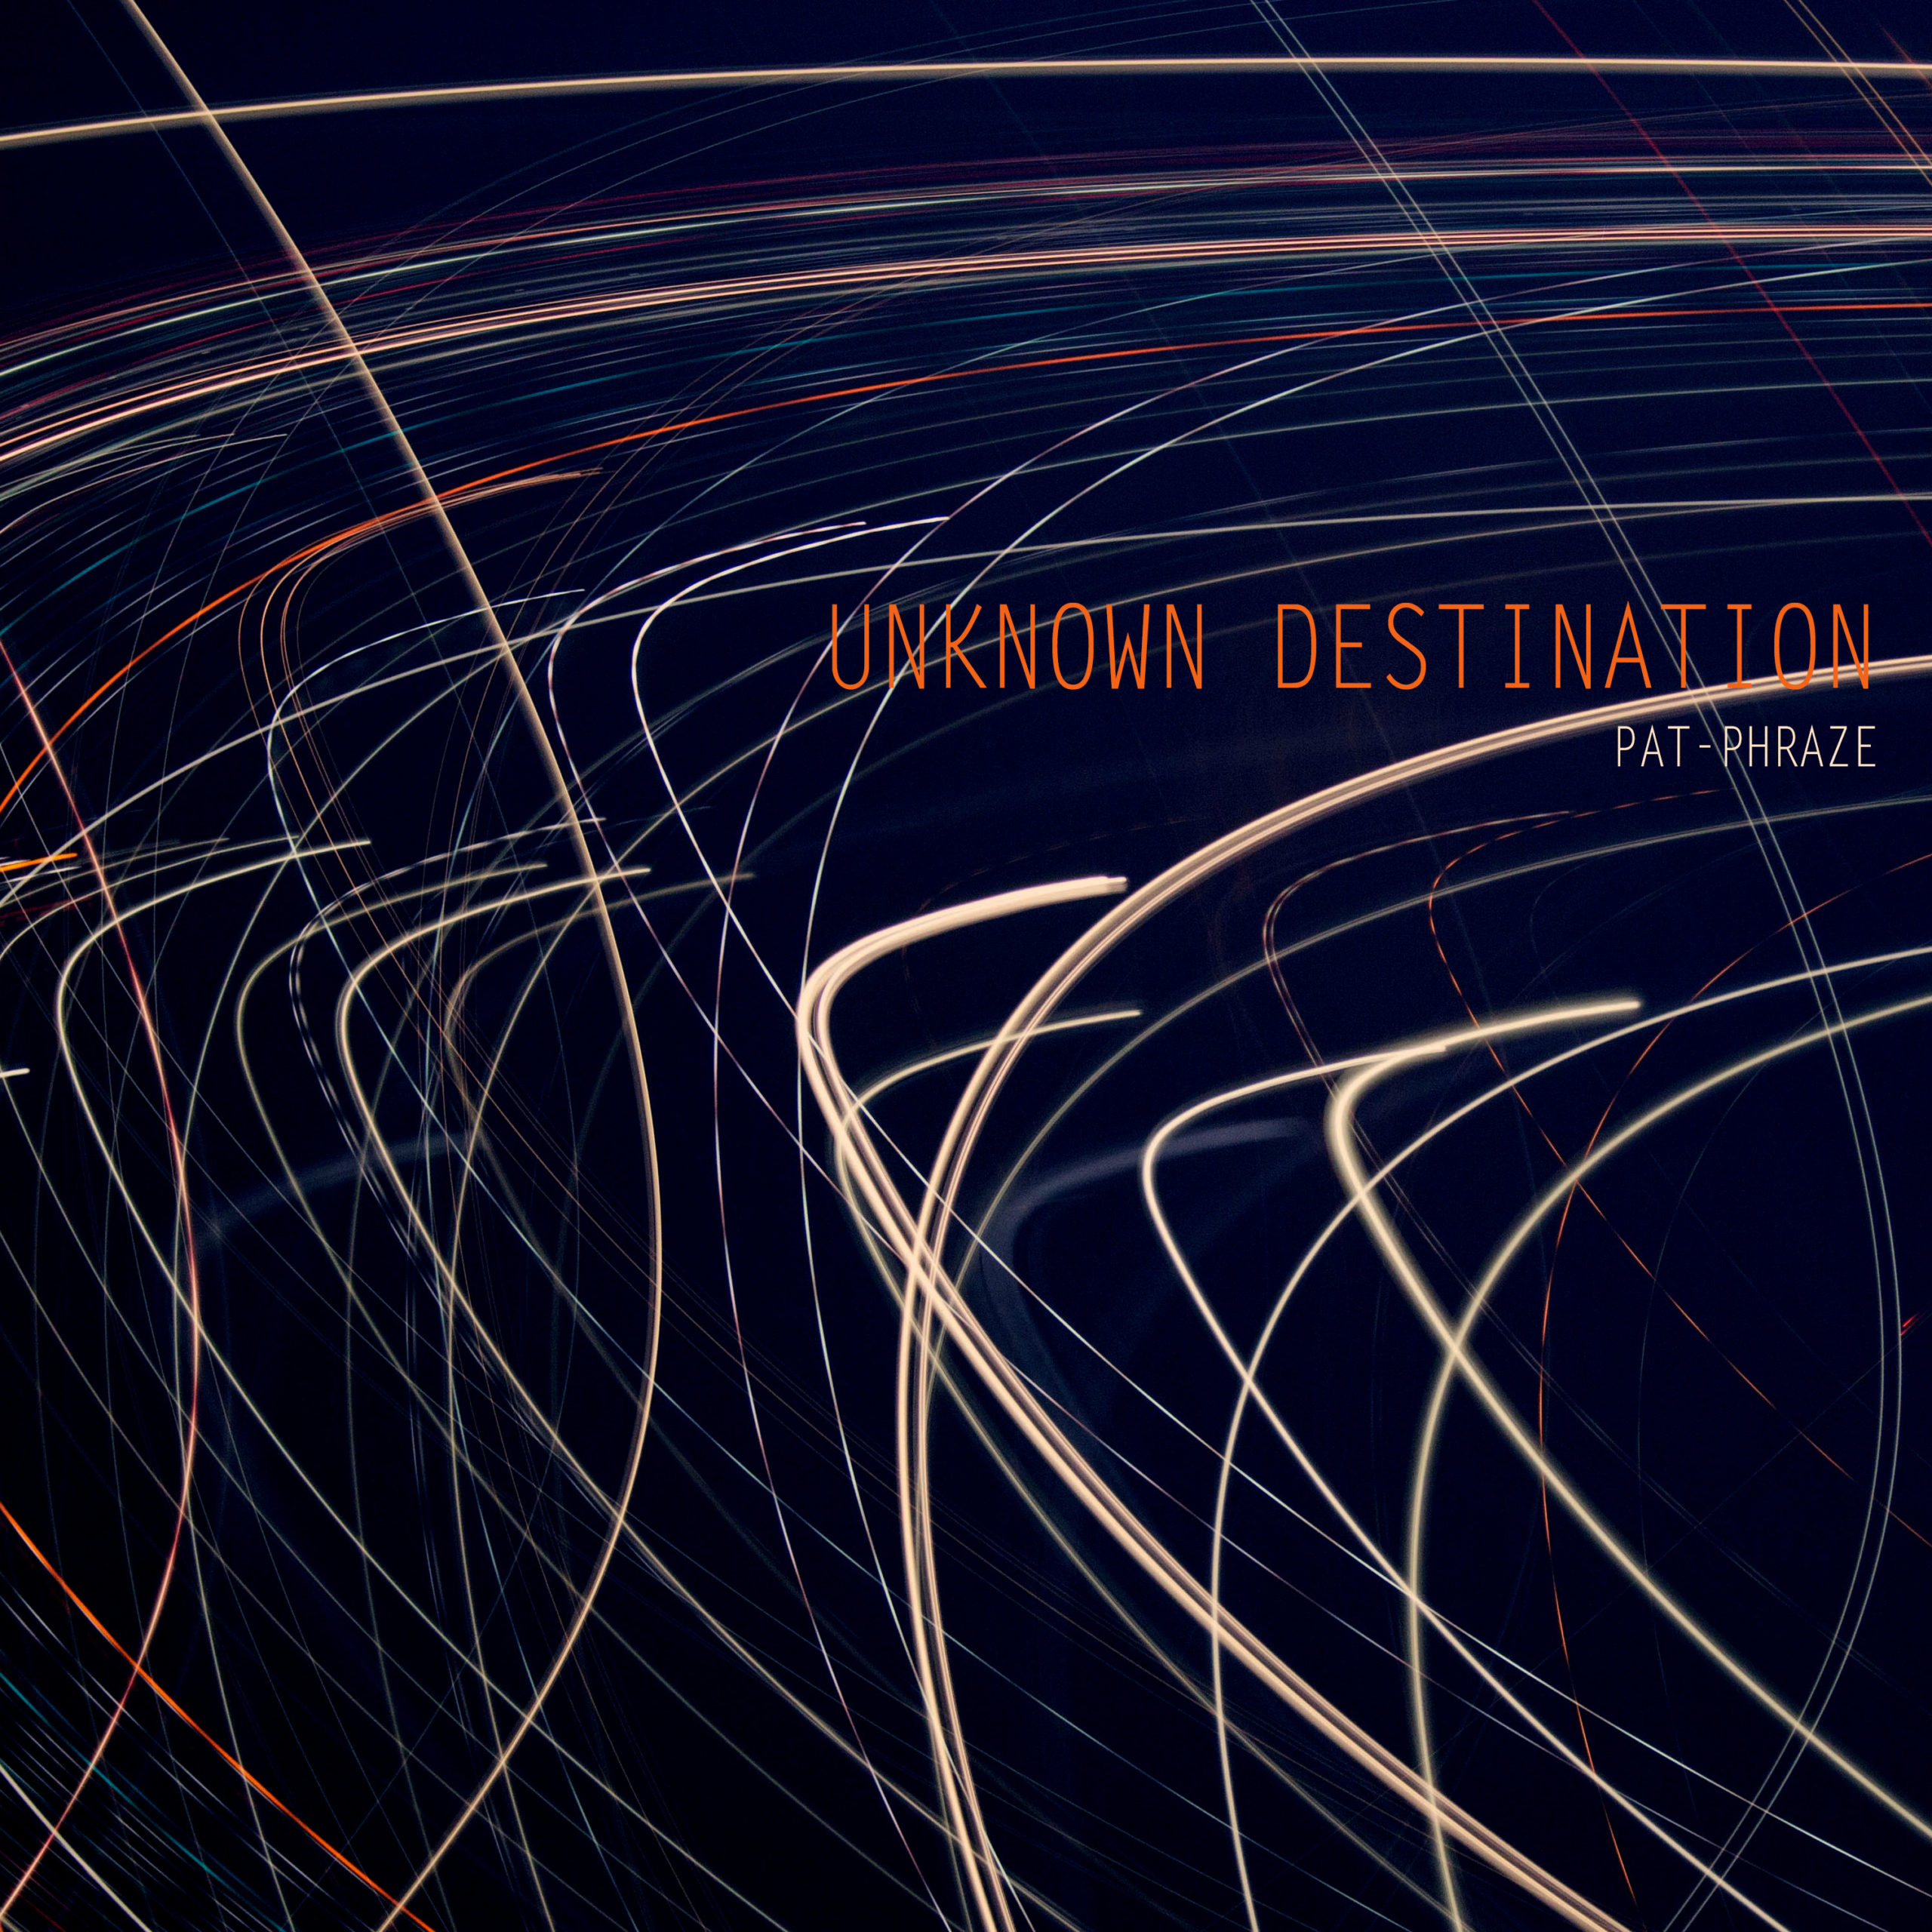 https://www.ultimate-house-records.com/wp-content/uploads/2021/05/UD_018_Pat-Phraze_Unknown_Destination_web-scaled.jpg